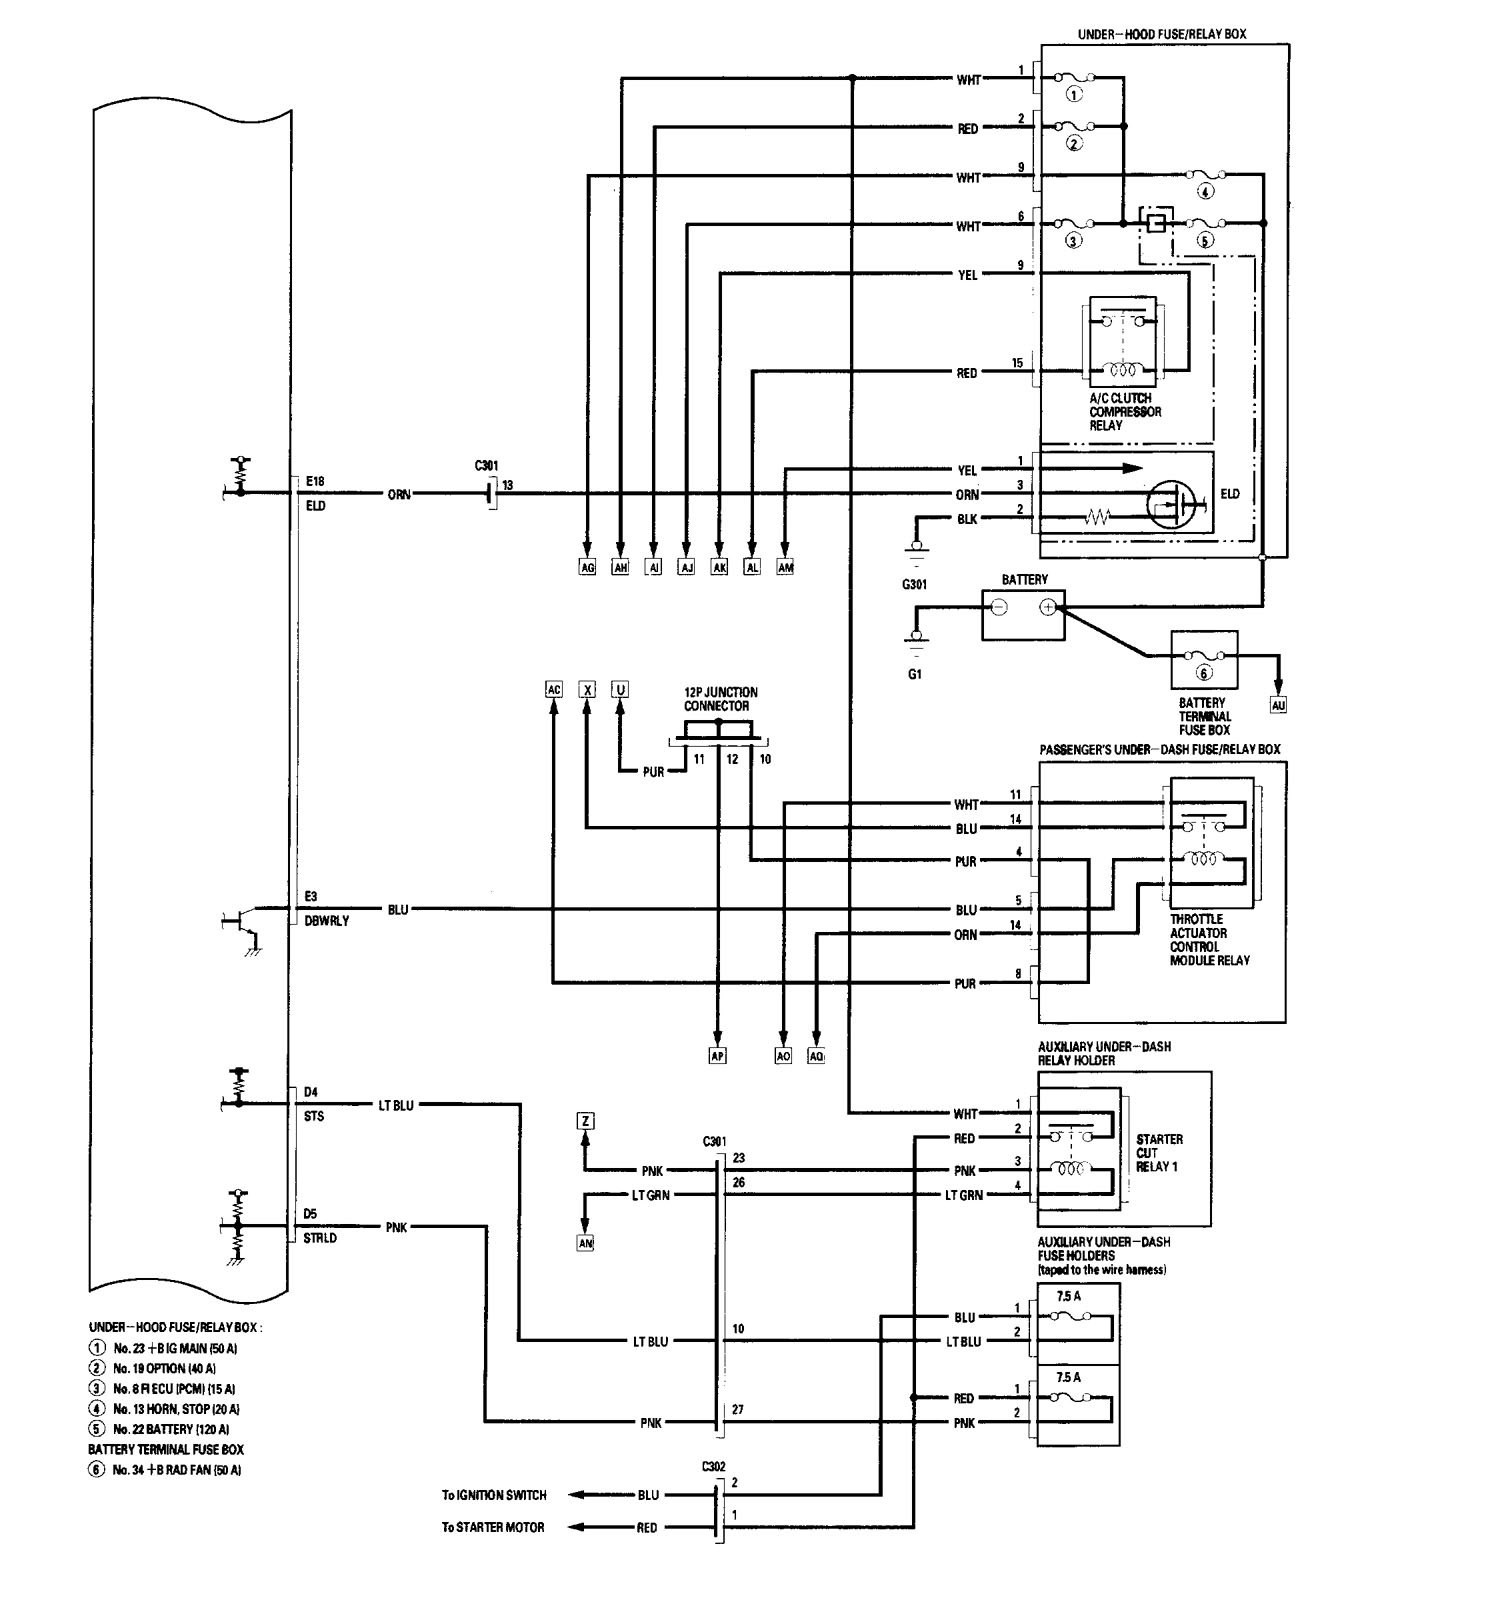 hight resolution of 2006 acura rl 35 fuse box diagram wiring diagrams u2022 2003 saturn l300 fuse box